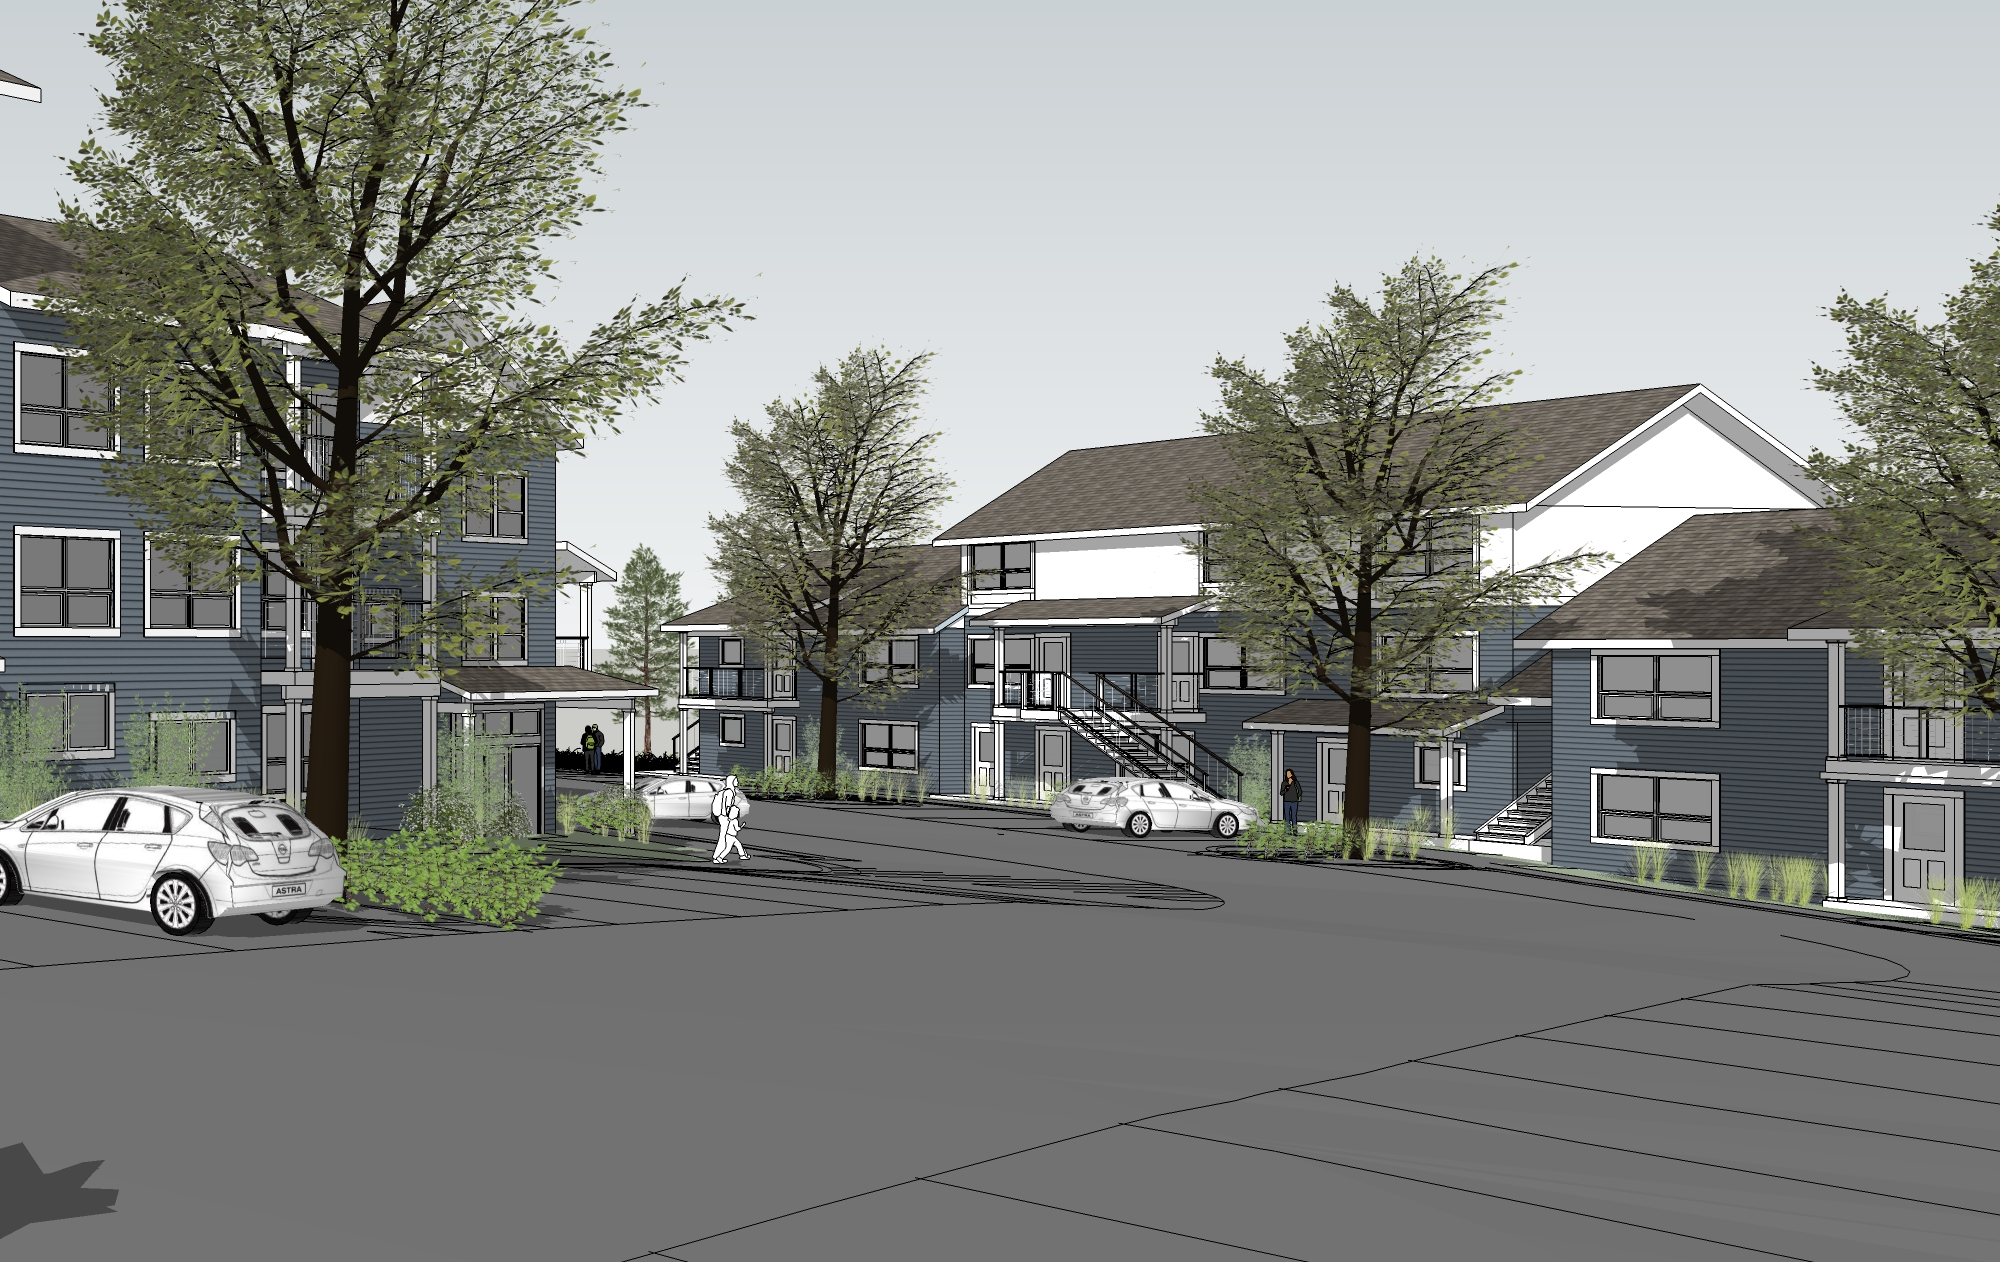 - Client: Sopi Village LLCLocation: Pullman, WAProject Size: 5 Buildings of 56 Units of Affordable Housing, Parking